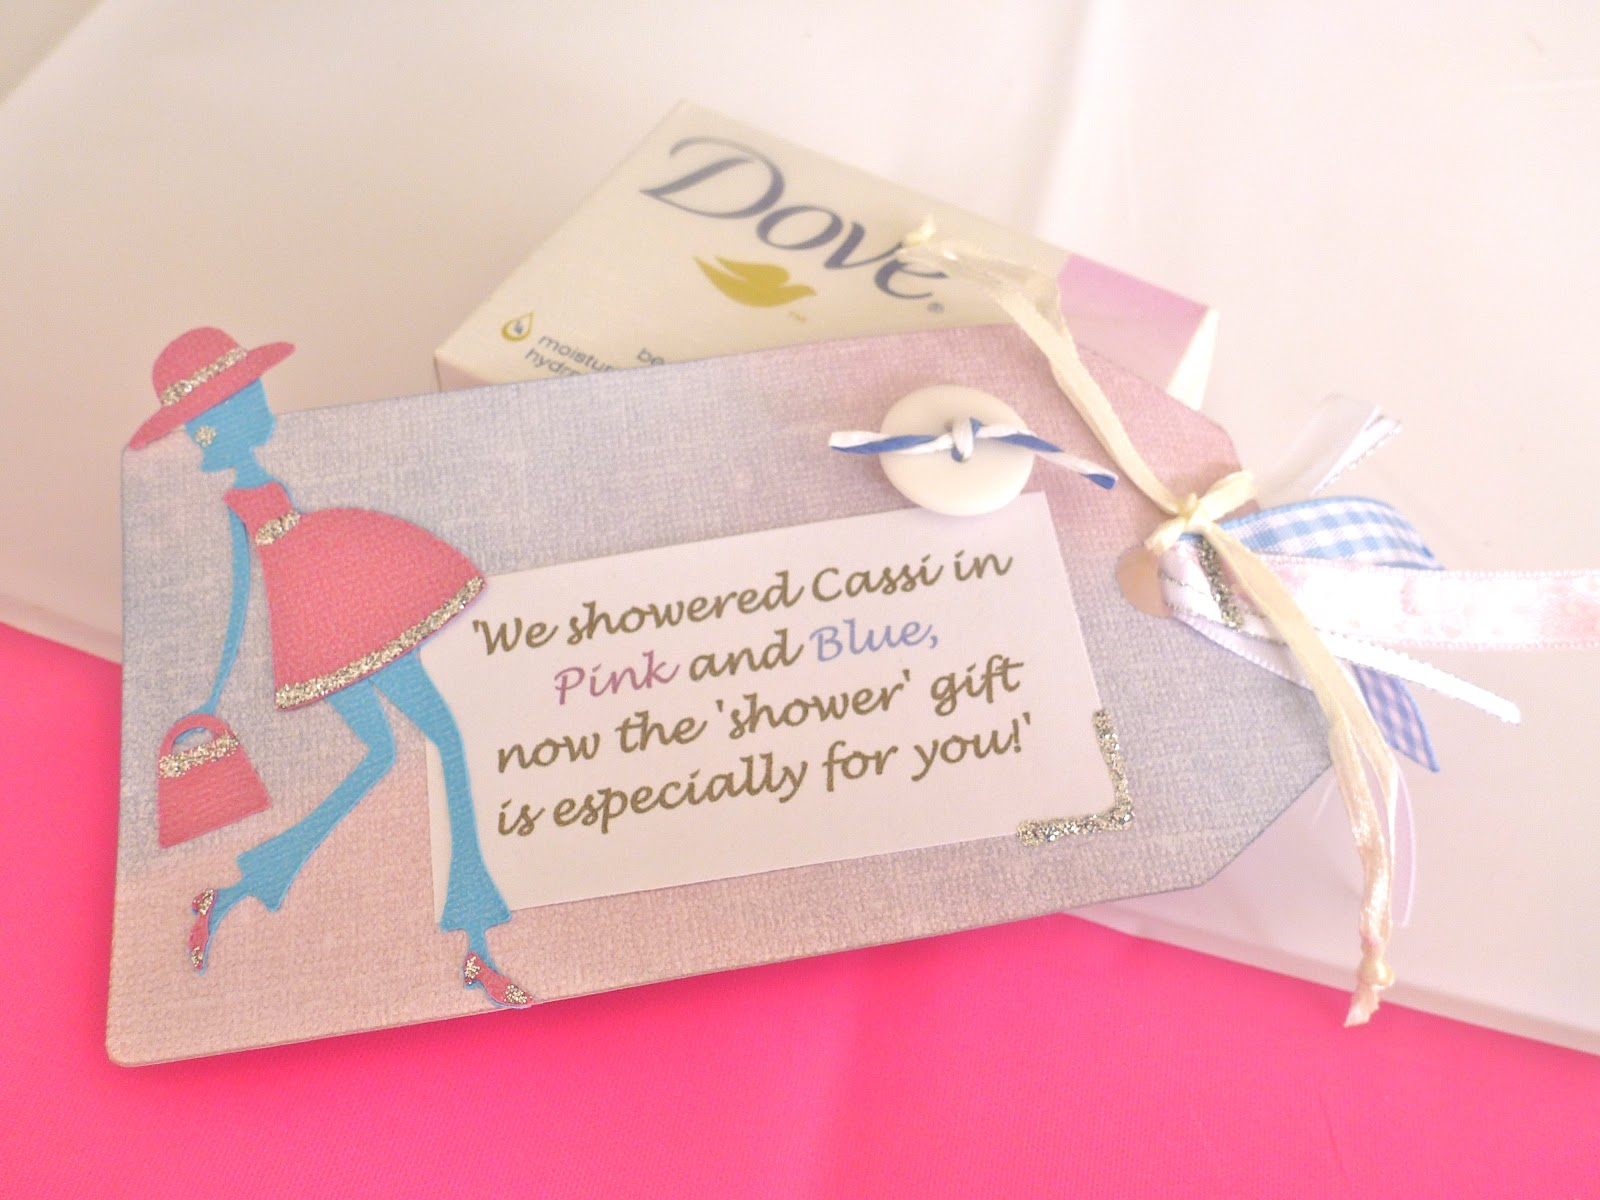 Cassadiva: My Baby Shower - Thank You Gifts (Part 4)